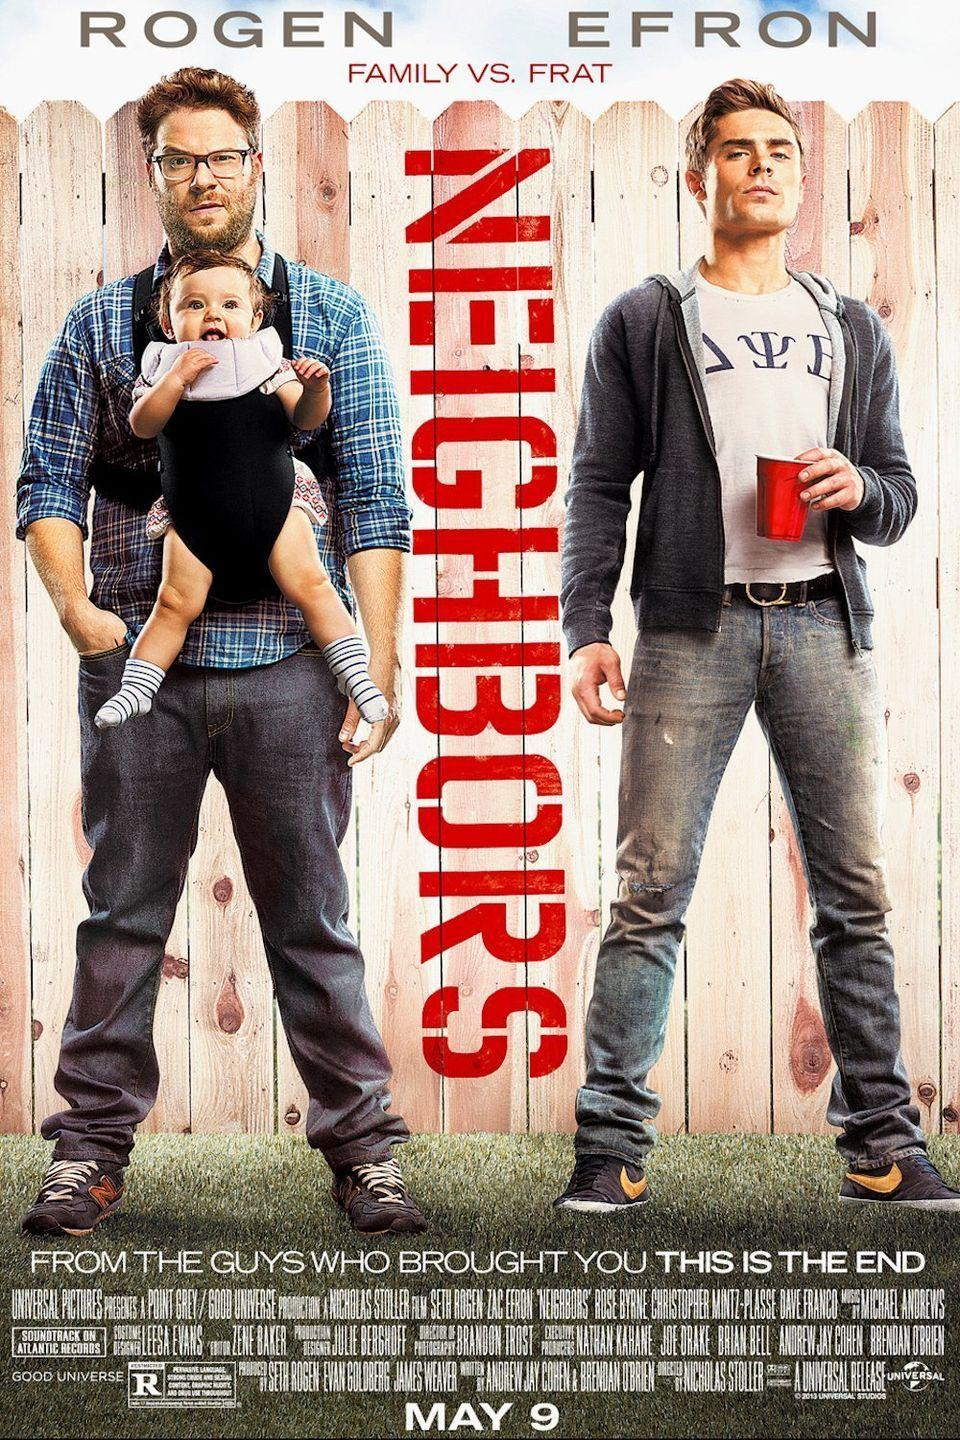 """<p>Mac and Kelly (<strong>Seth Rogan</strong> and <strong>Rose Byrne</strong>) are two parents who just moved into the neighborhood with their baby daughter. Everything seems to fall into place until their next-door neighbor Teddy (<strong>Zac Efron</strong>) and his fraternity move in and start a war with the two parents. You can only imagine the hilarity that ensues.</p><p><a class=""""link rapid-noclick-resp"""" href=""""https://www.amazon.com/Neighbors-Seth-Rogen/dp/B00K7WZGPA/ref=sr_1_2?dchild=1&keywords=NEIGHBORS&qid=1596922515&sr=8-2&tag=syn-yahoo-20&ascsubtag=%5Bartid%7C10055.g.33513354%5Bsrc%7Cyahoo-us"""" rel=""""nofollow noopener"""" target=""""_blank"""" data-ylk=""""slk:WATCH NOW"""">WATCH NOW</a></p>"""